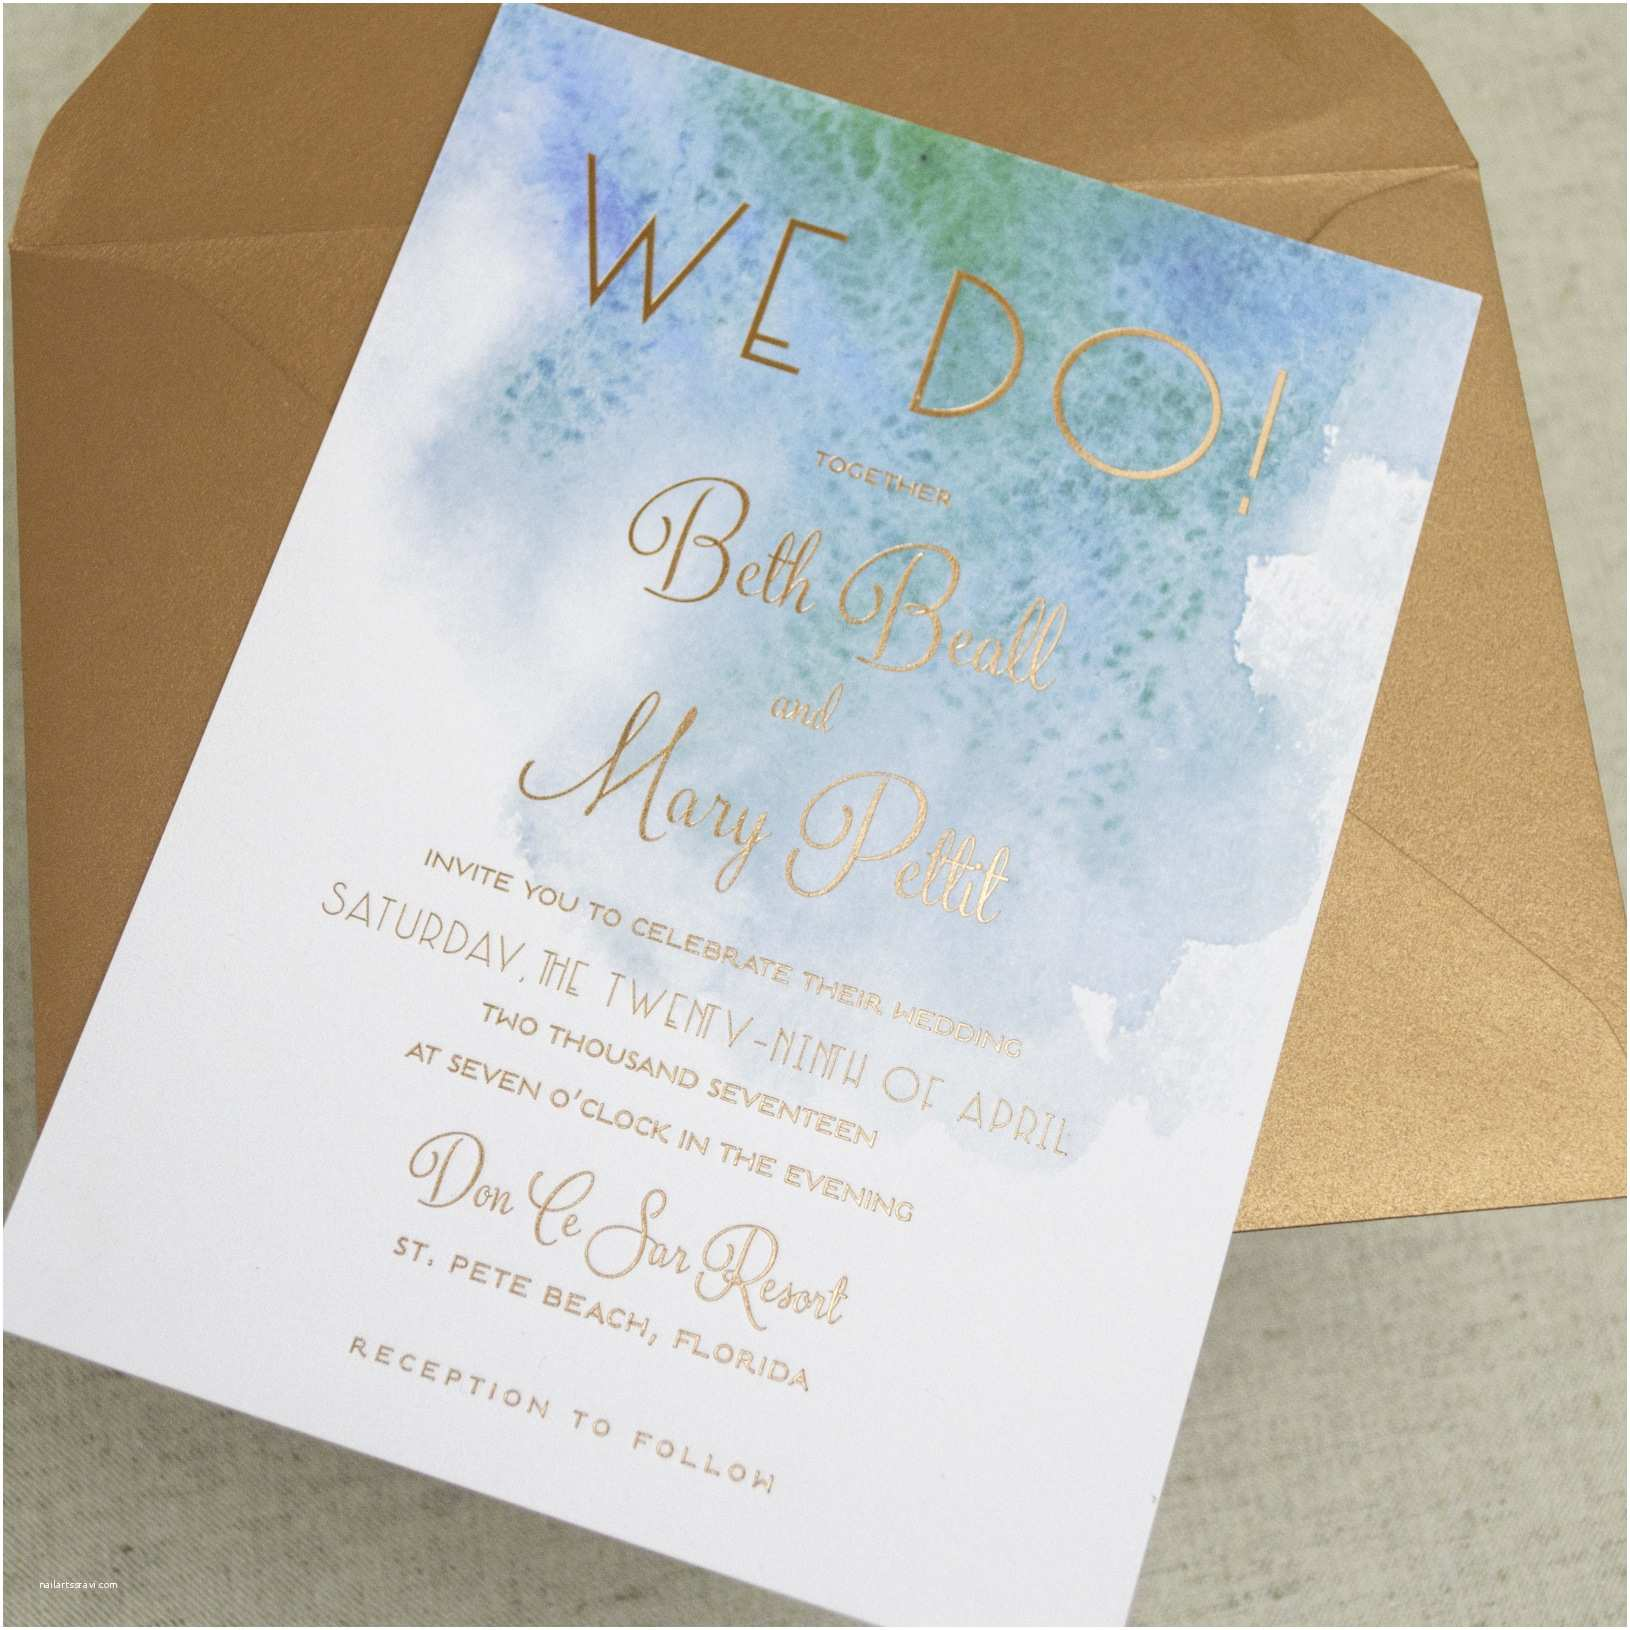 Sea themed Wedding Invitations Beautiful Ocean themed Wedding Invitations Styles